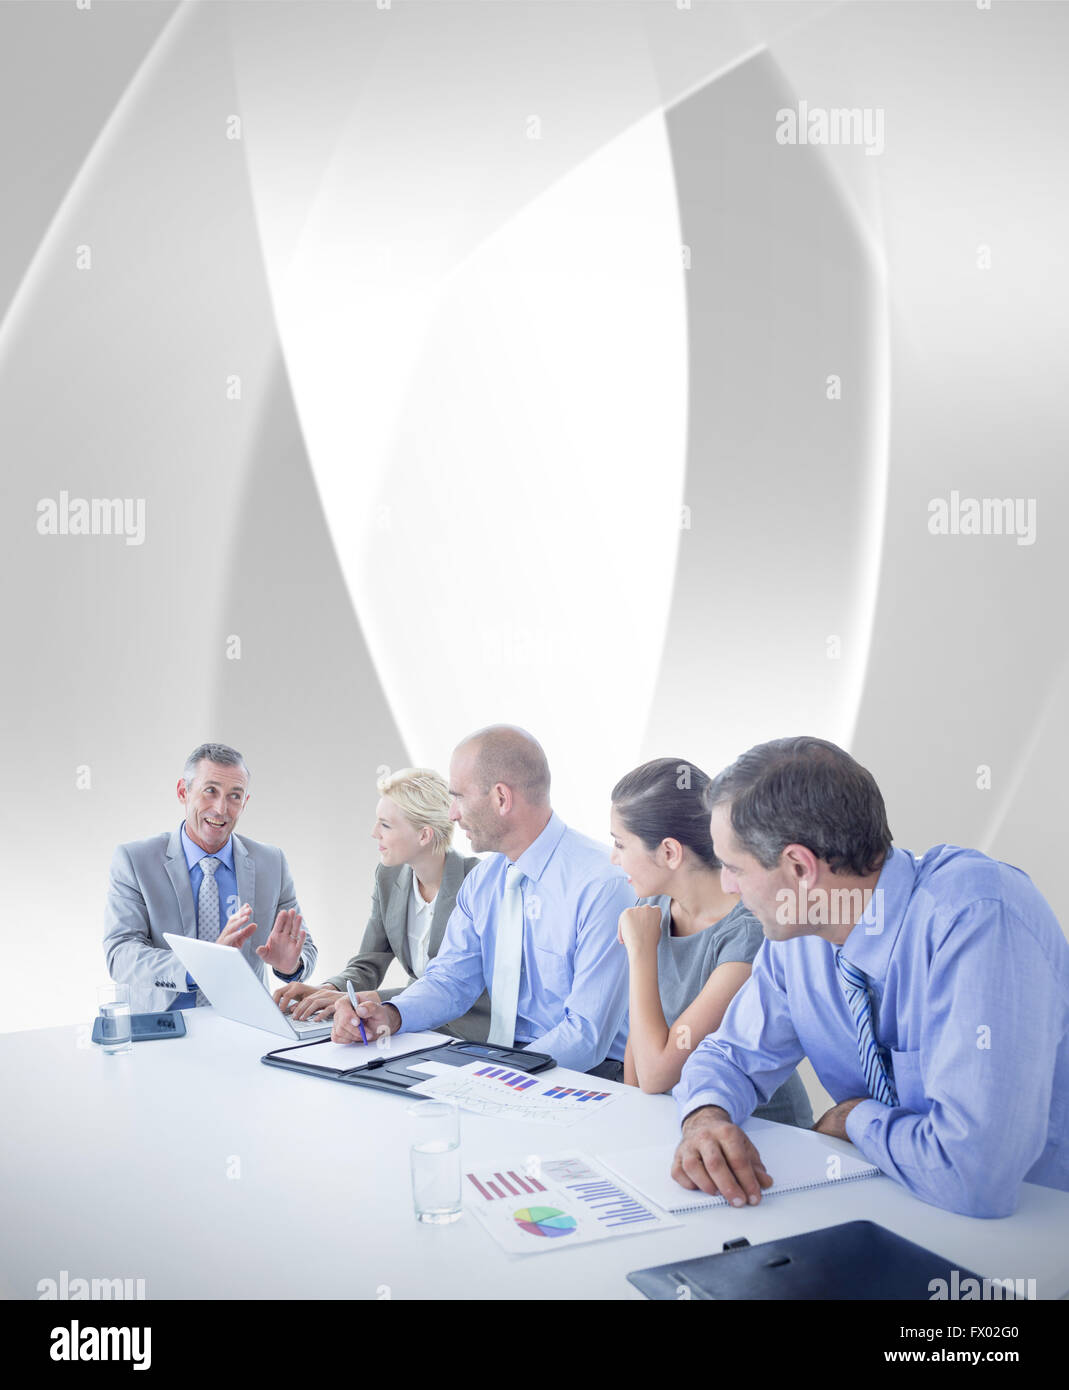 Composite image of business team having a meeting Stock Photo